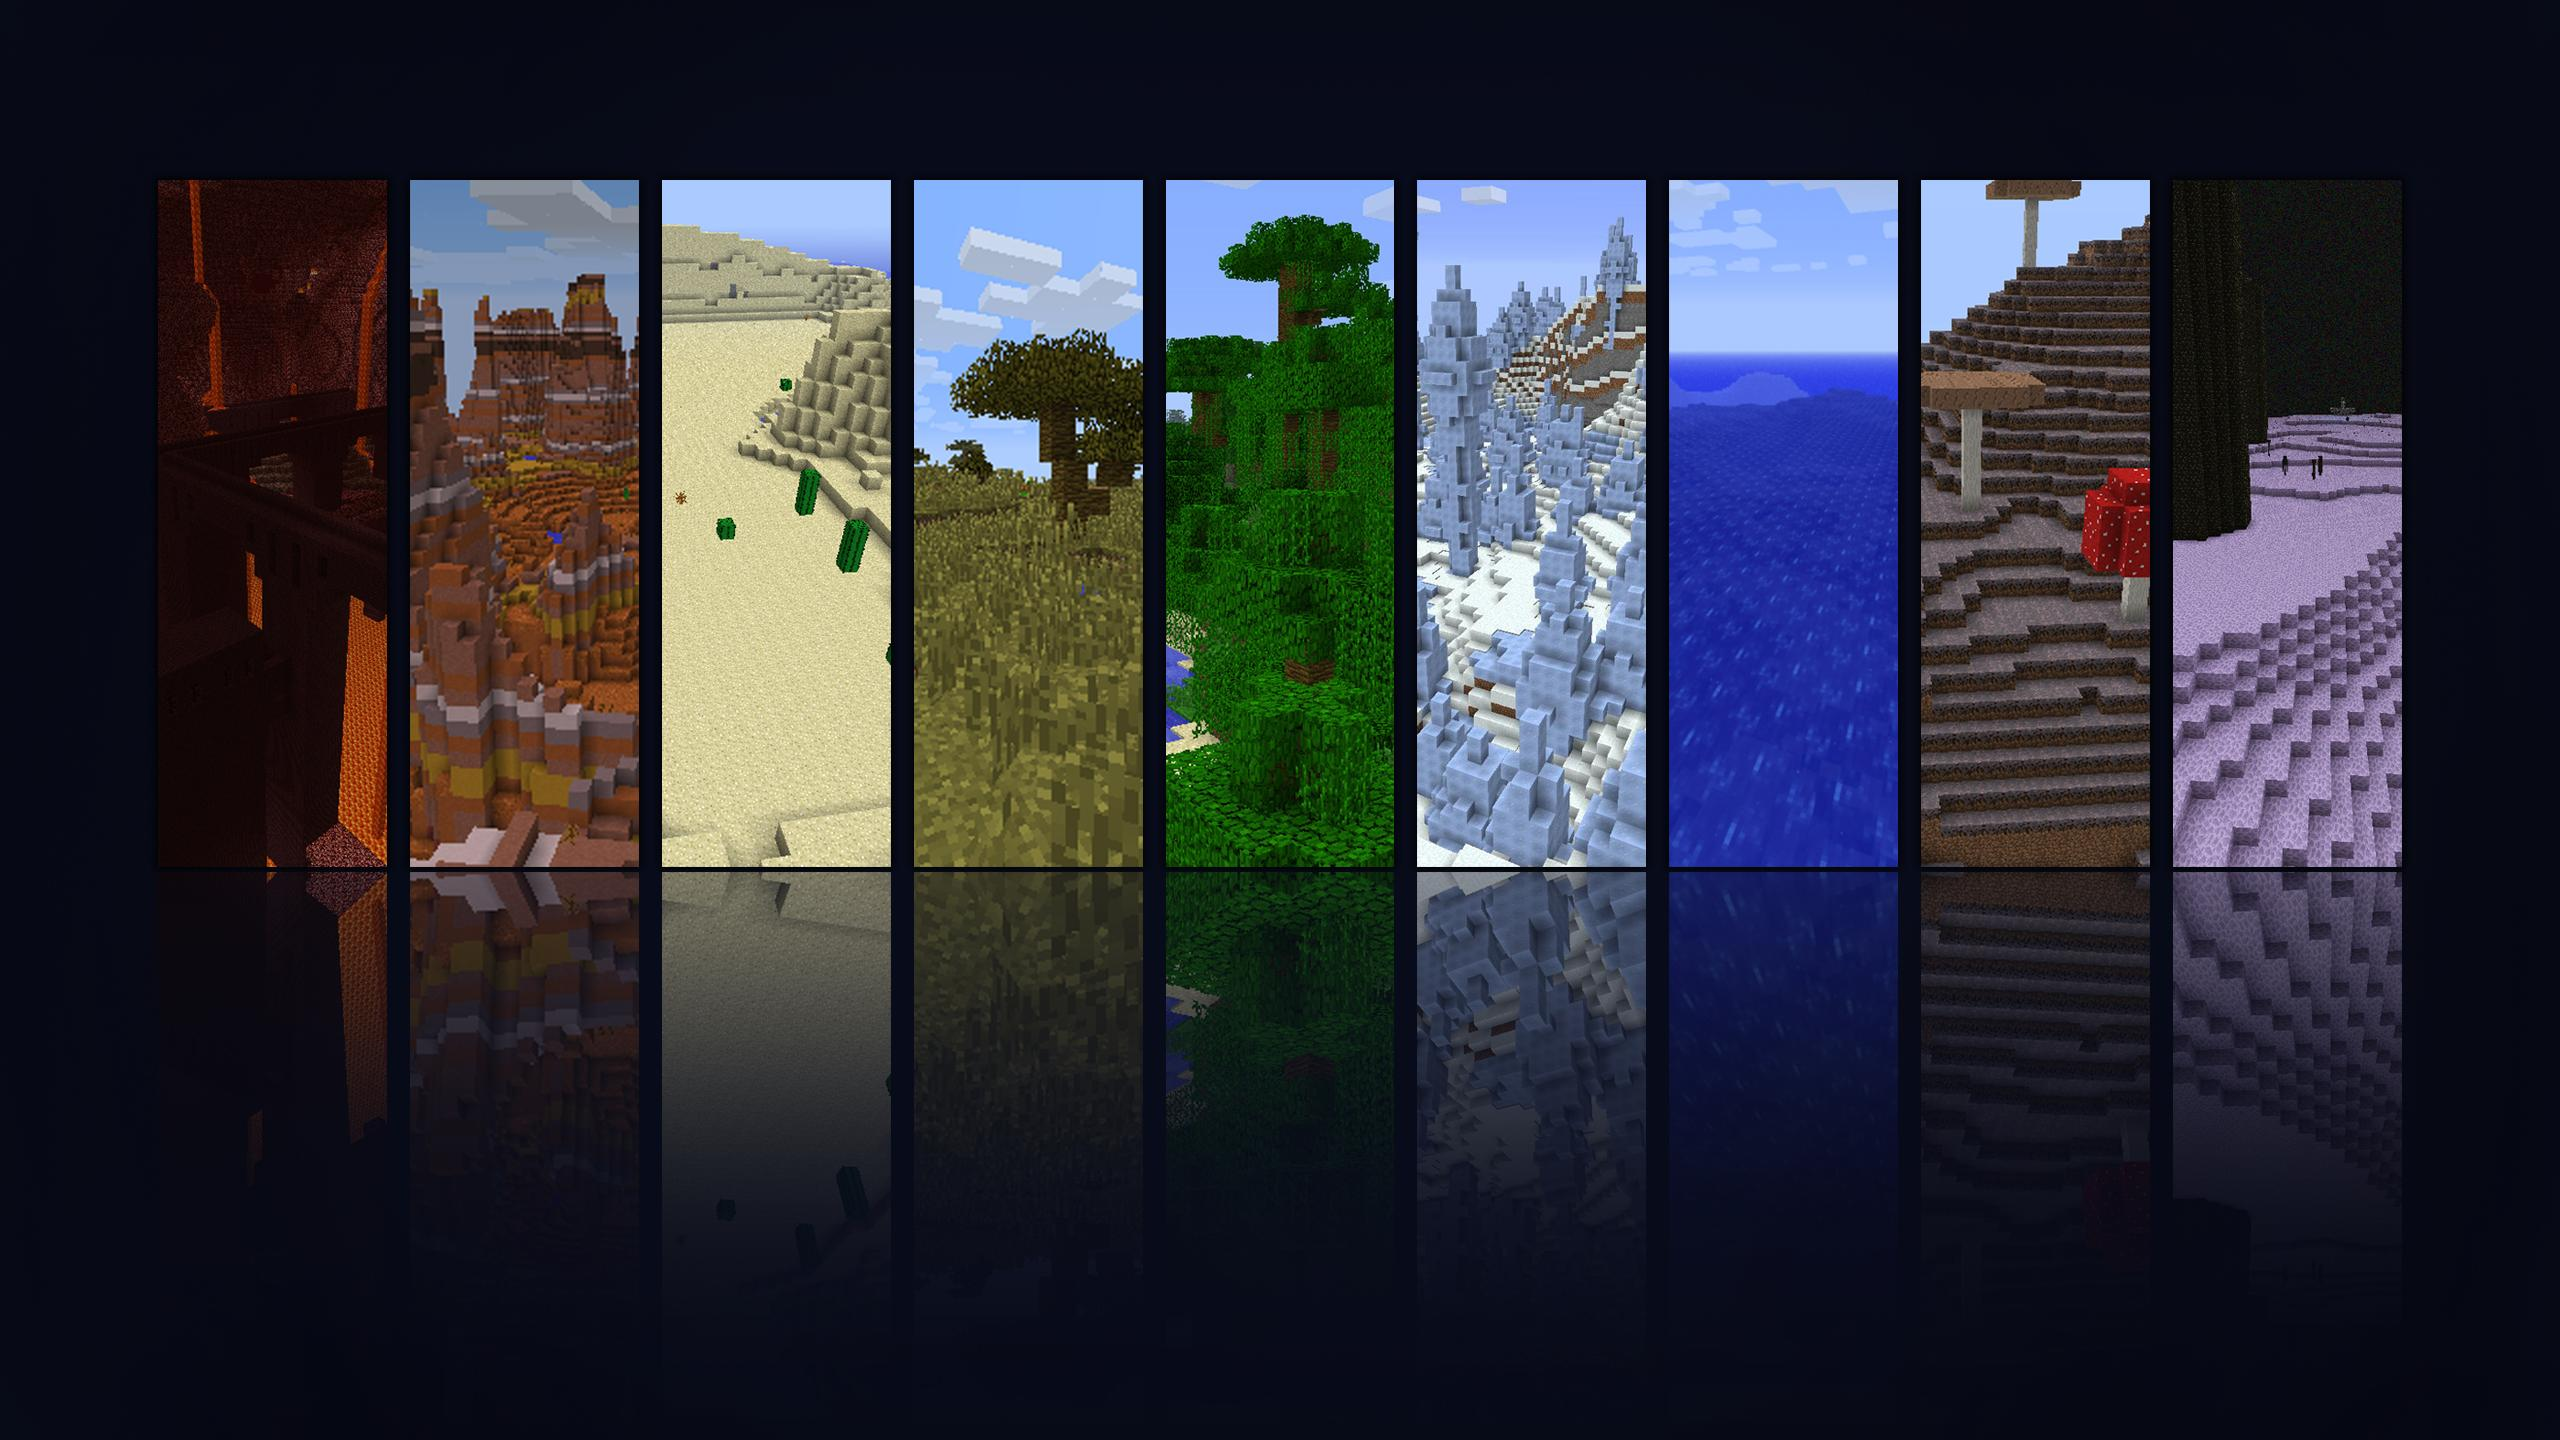 minecraft wallpapers for facebook full hd pictures